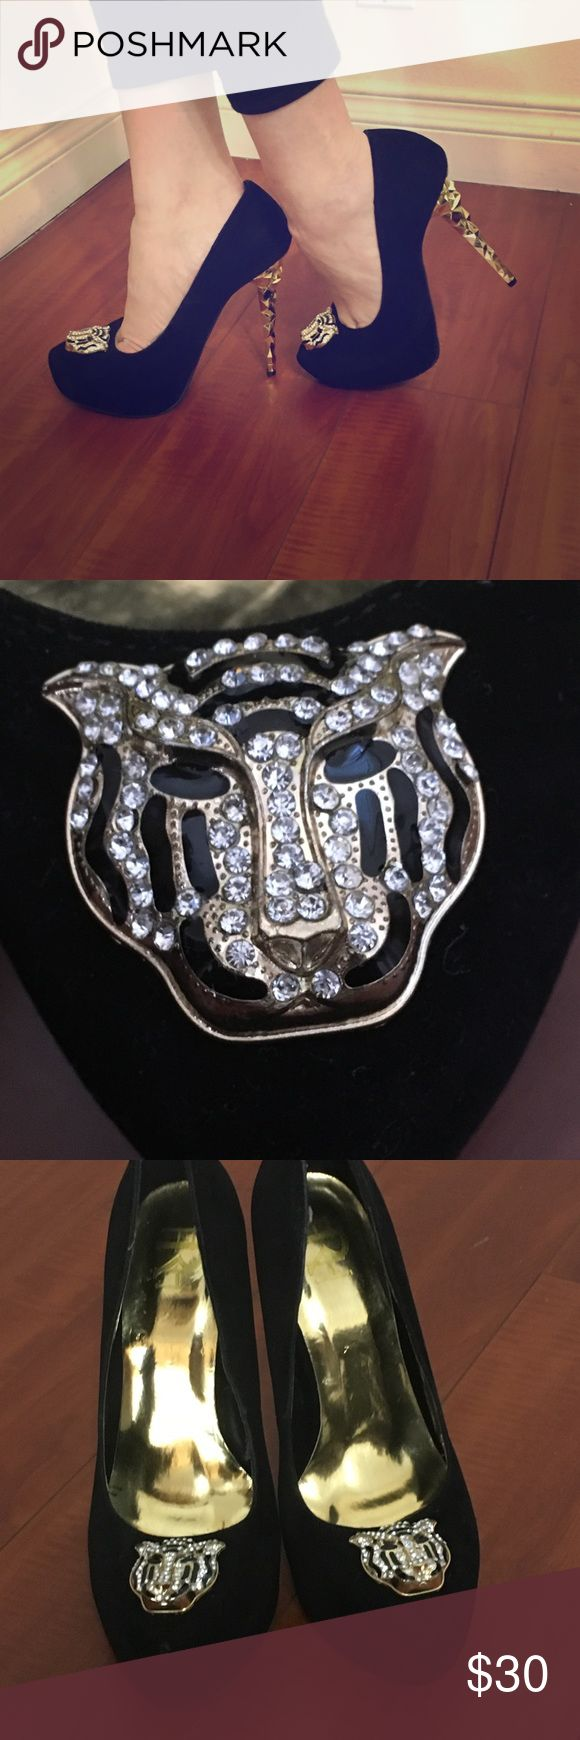 ✨💕✨ BLACK VELVET RHINESTONE ACCENT LION HEAD 👠 Designer inspired rhinestone accented lion head on upper front, smooth velvet upper, almond toe shape with gold geometric shape heel. Cushioned insole for comfort. Easy slip on and off style. Heel measures at 5.25 inches tall with a 1.25 inch platform. New without tag and box. Shoes Heels